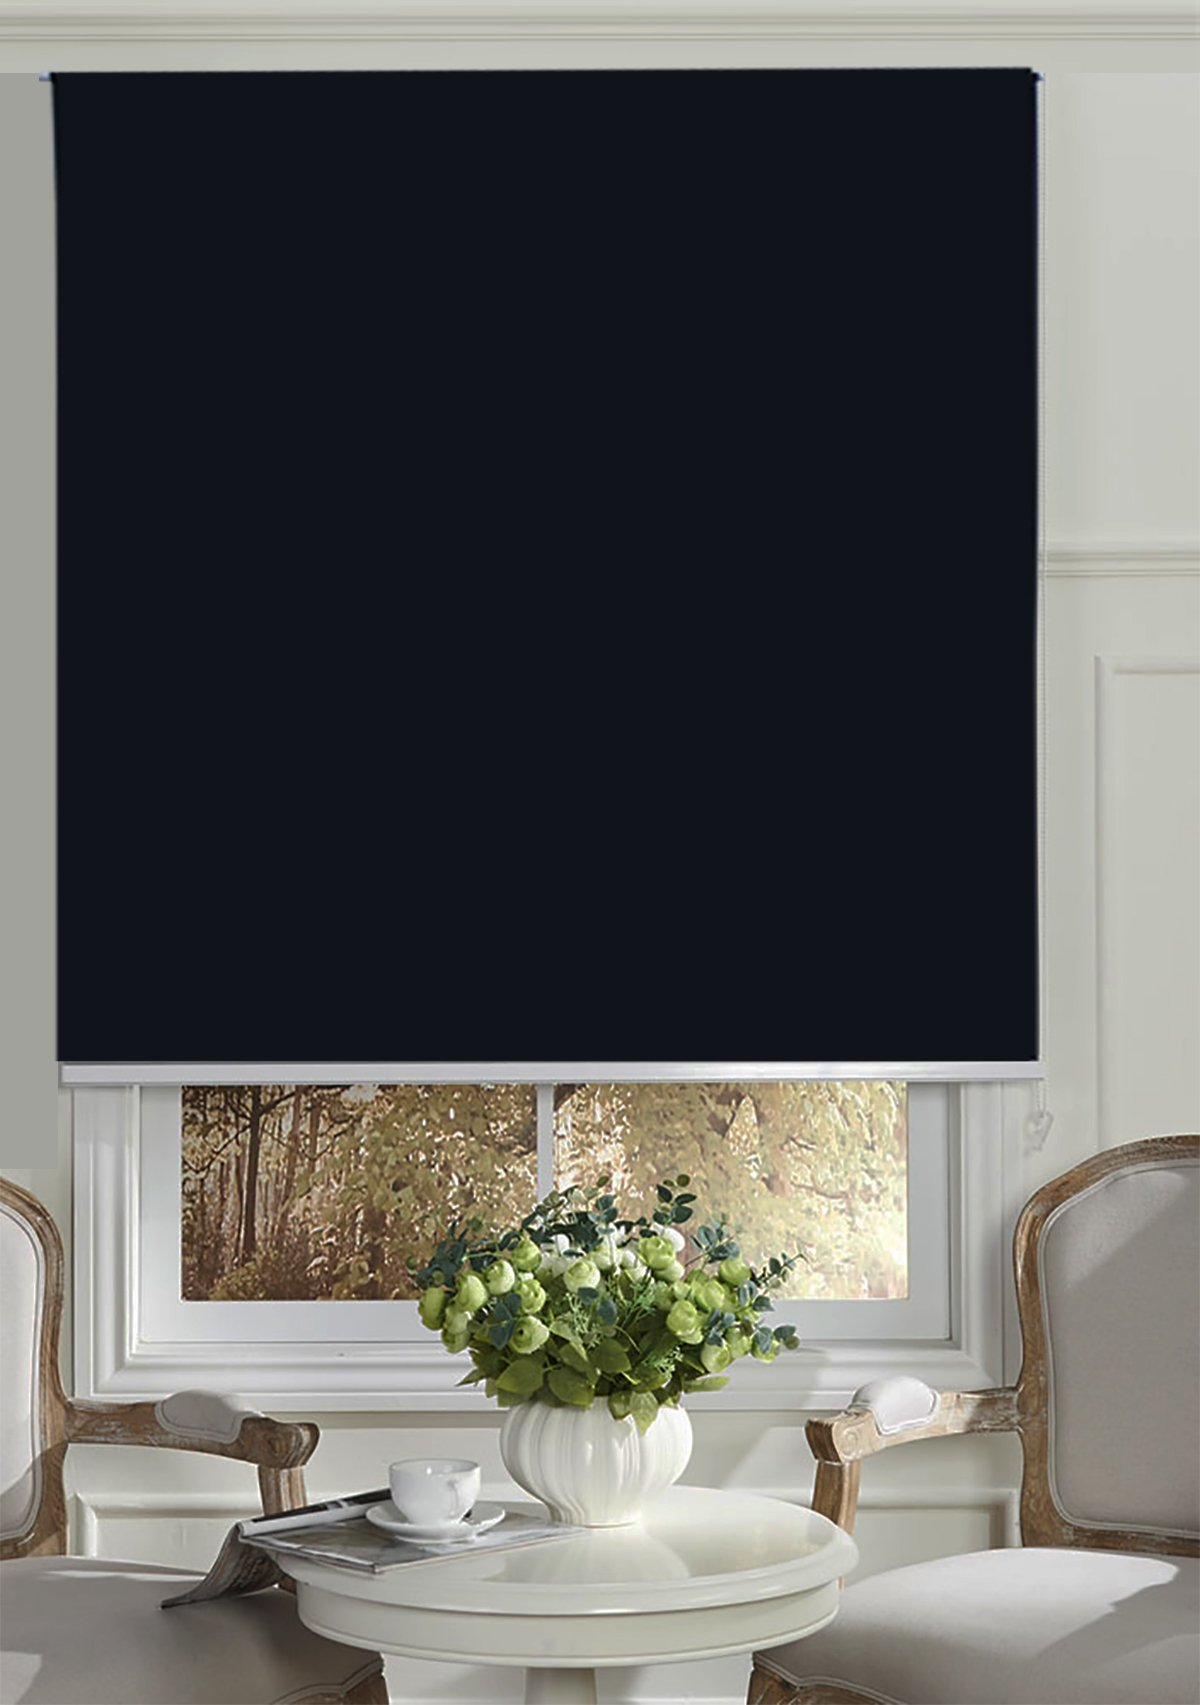 Beryhome Cristal Blackout Room Darkening Roller Shades/Blinds With Chain Cord. 20 Beautiful Colors Available. (W25''xH68'', Black) by Beryhome (Image #1)